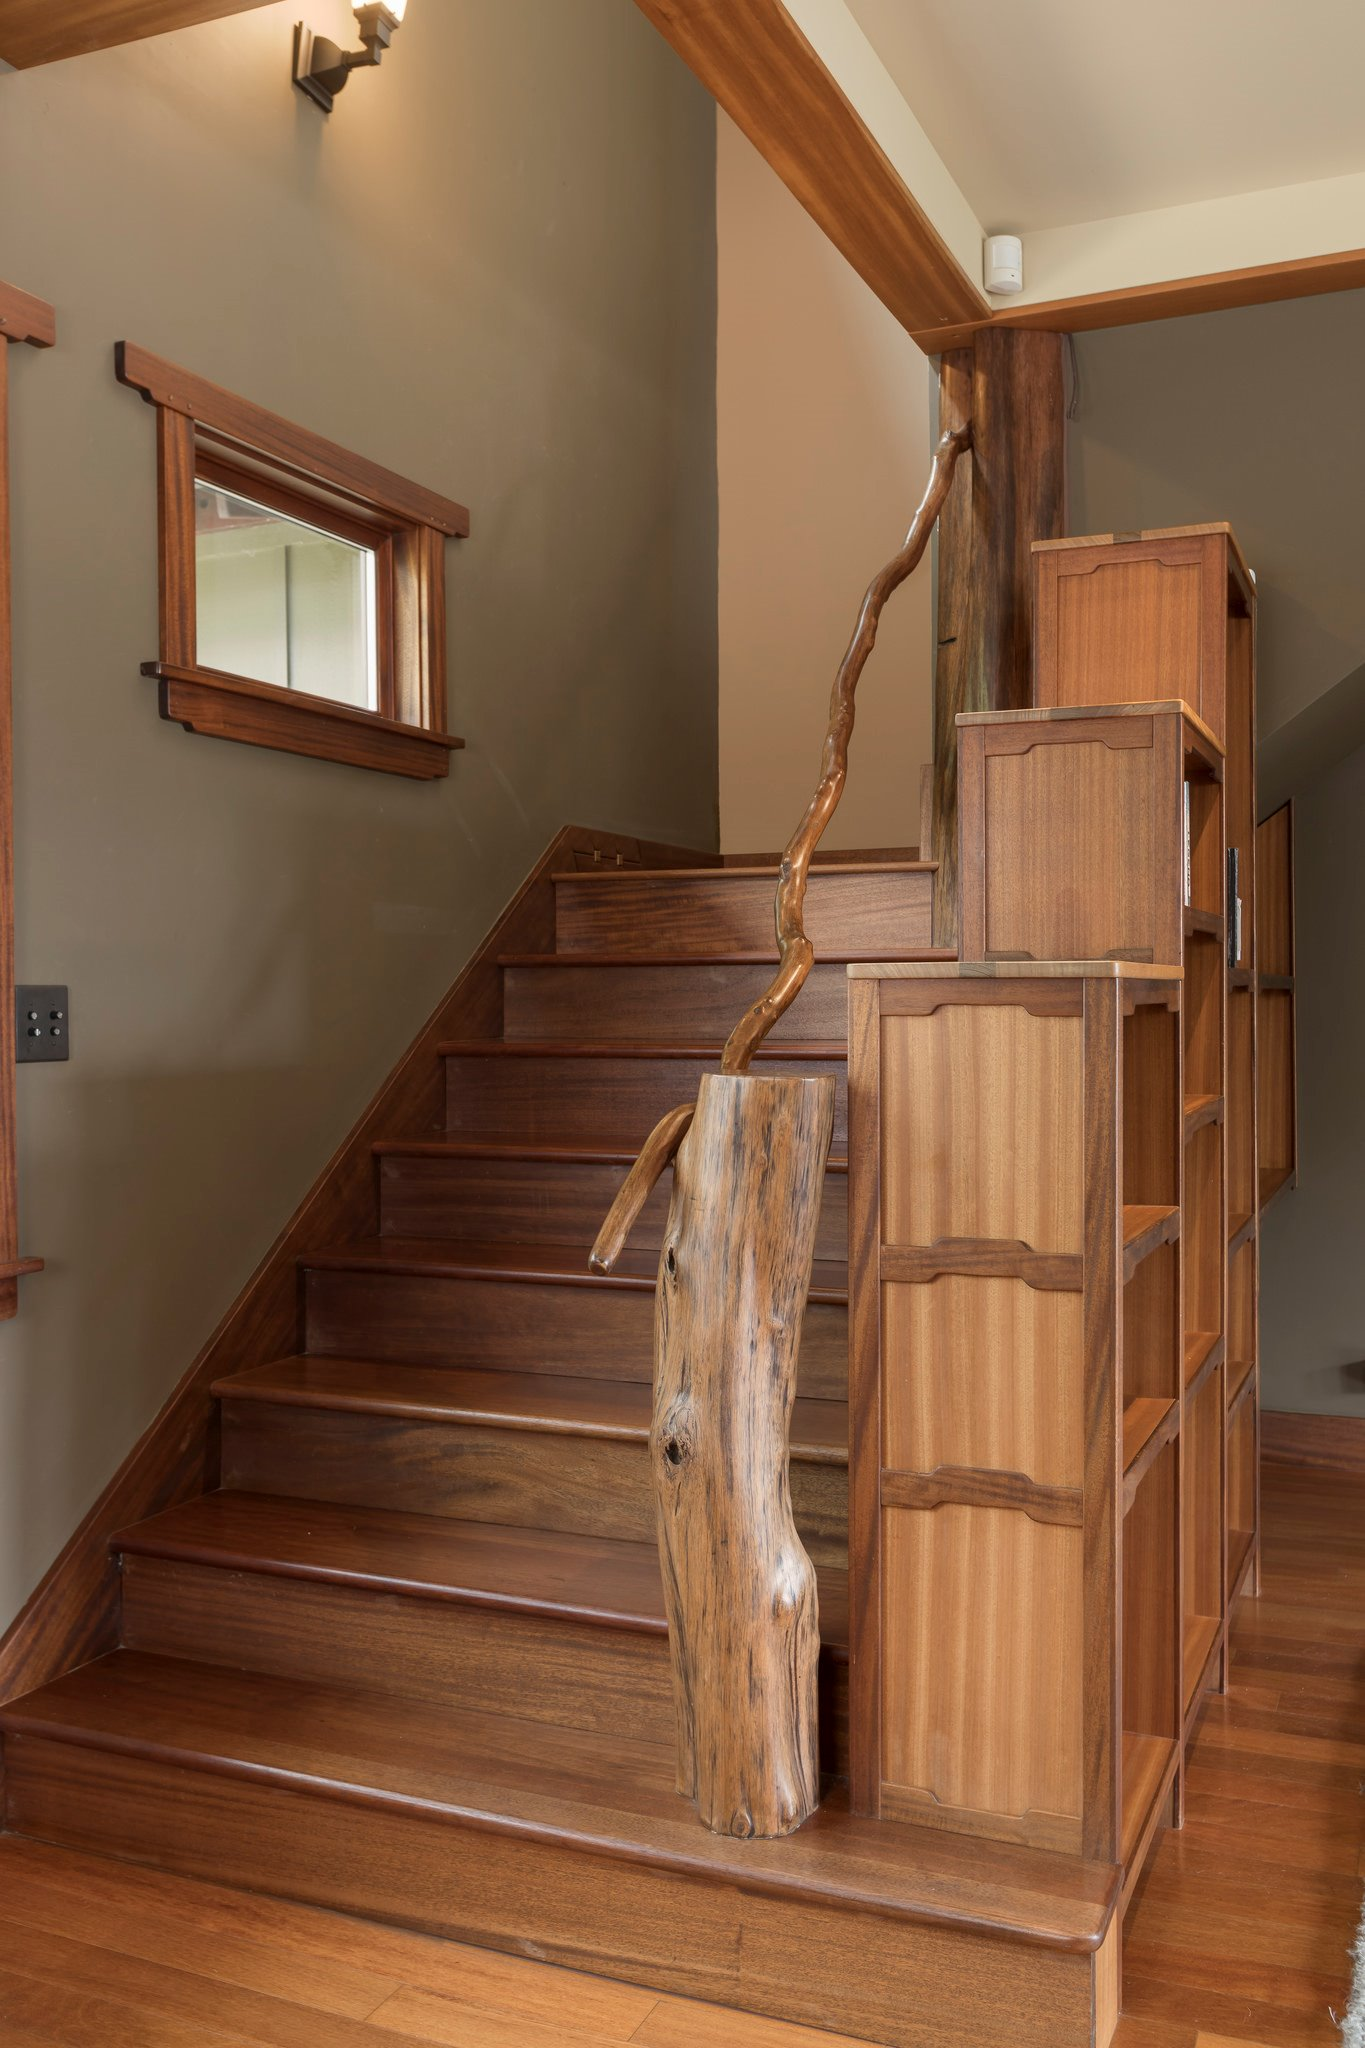 All wood detailing in the home was hand done by the builder. The stair treads are certified sustainable Brazilian Cherry.